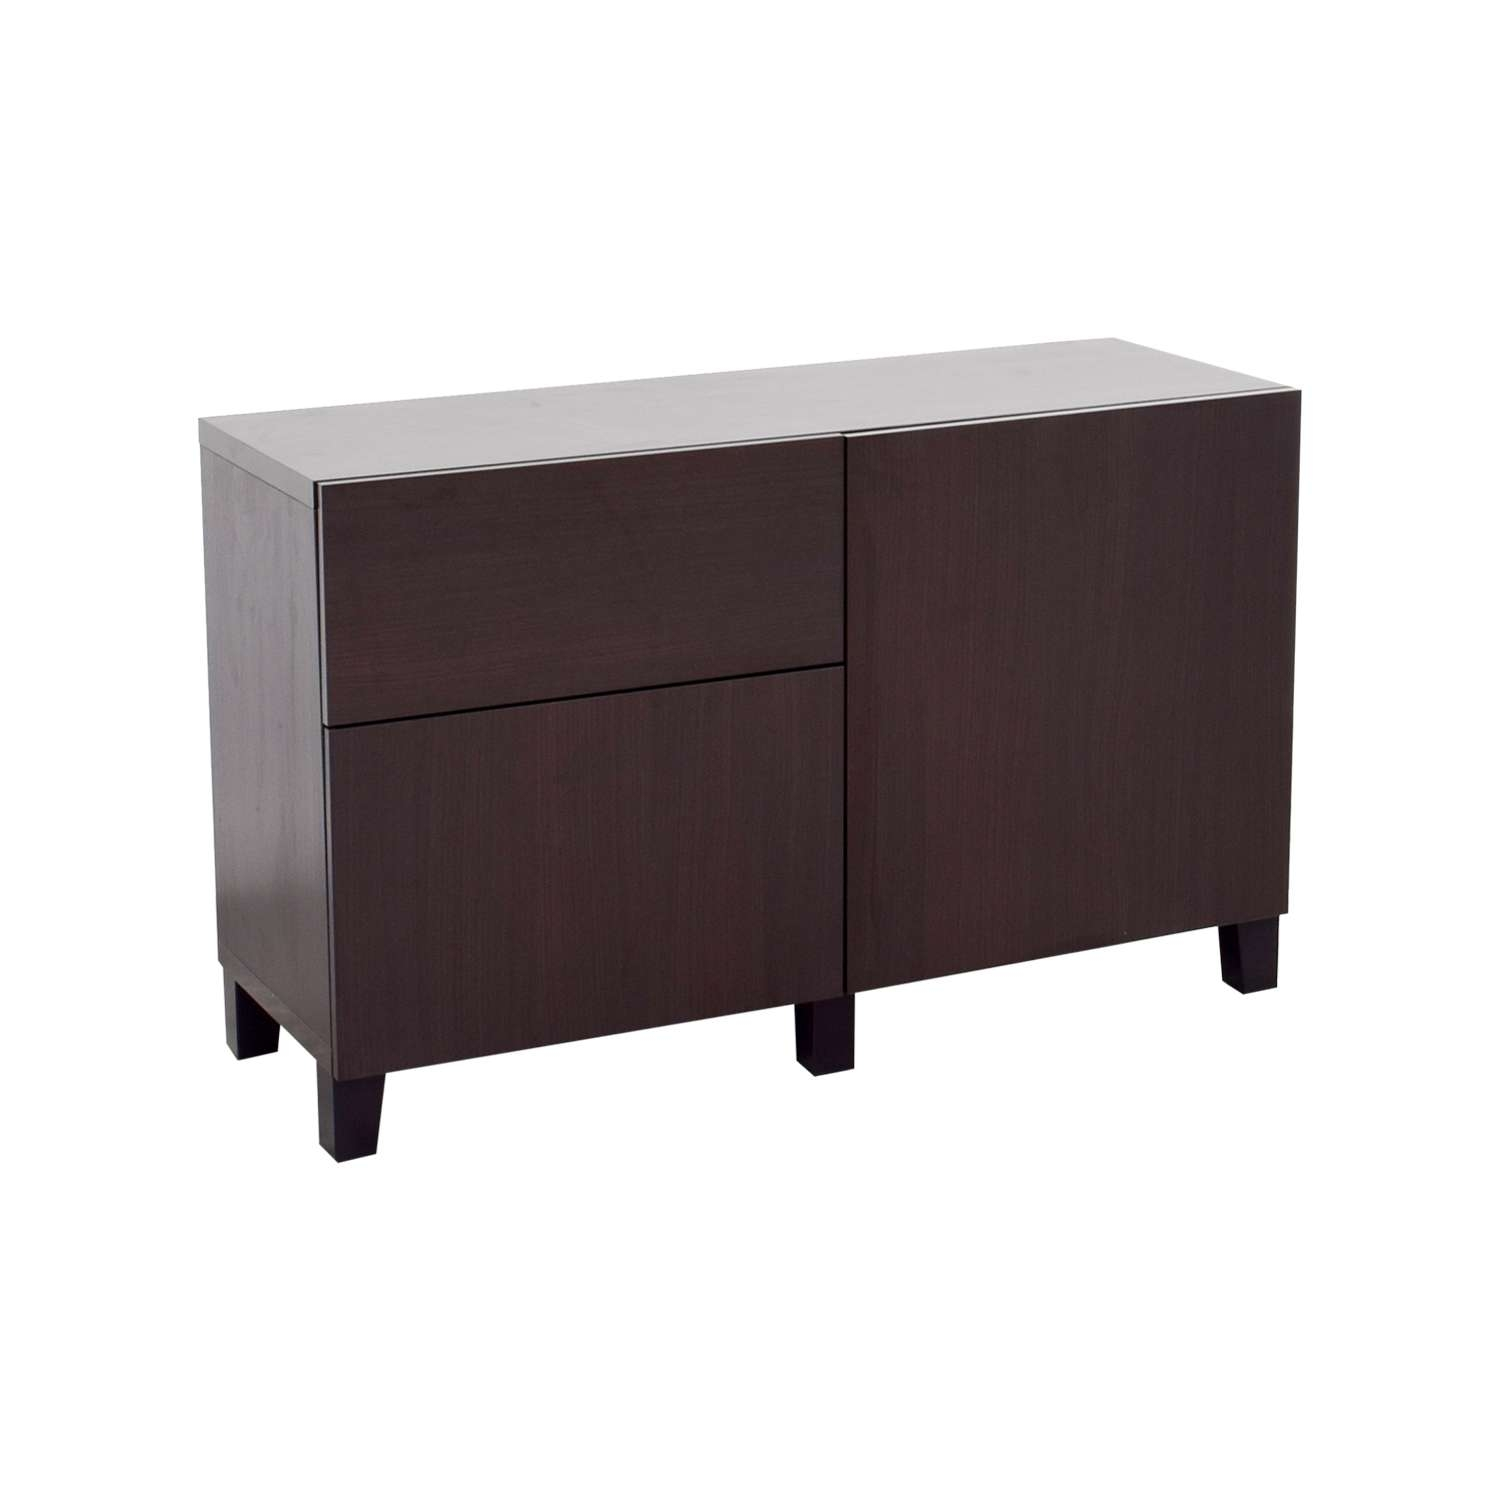 66% Off – Ikea Ikea Dark Brown Storage Sideboard / Storage Within Dark Brown Sideboards (View 2 of 20)